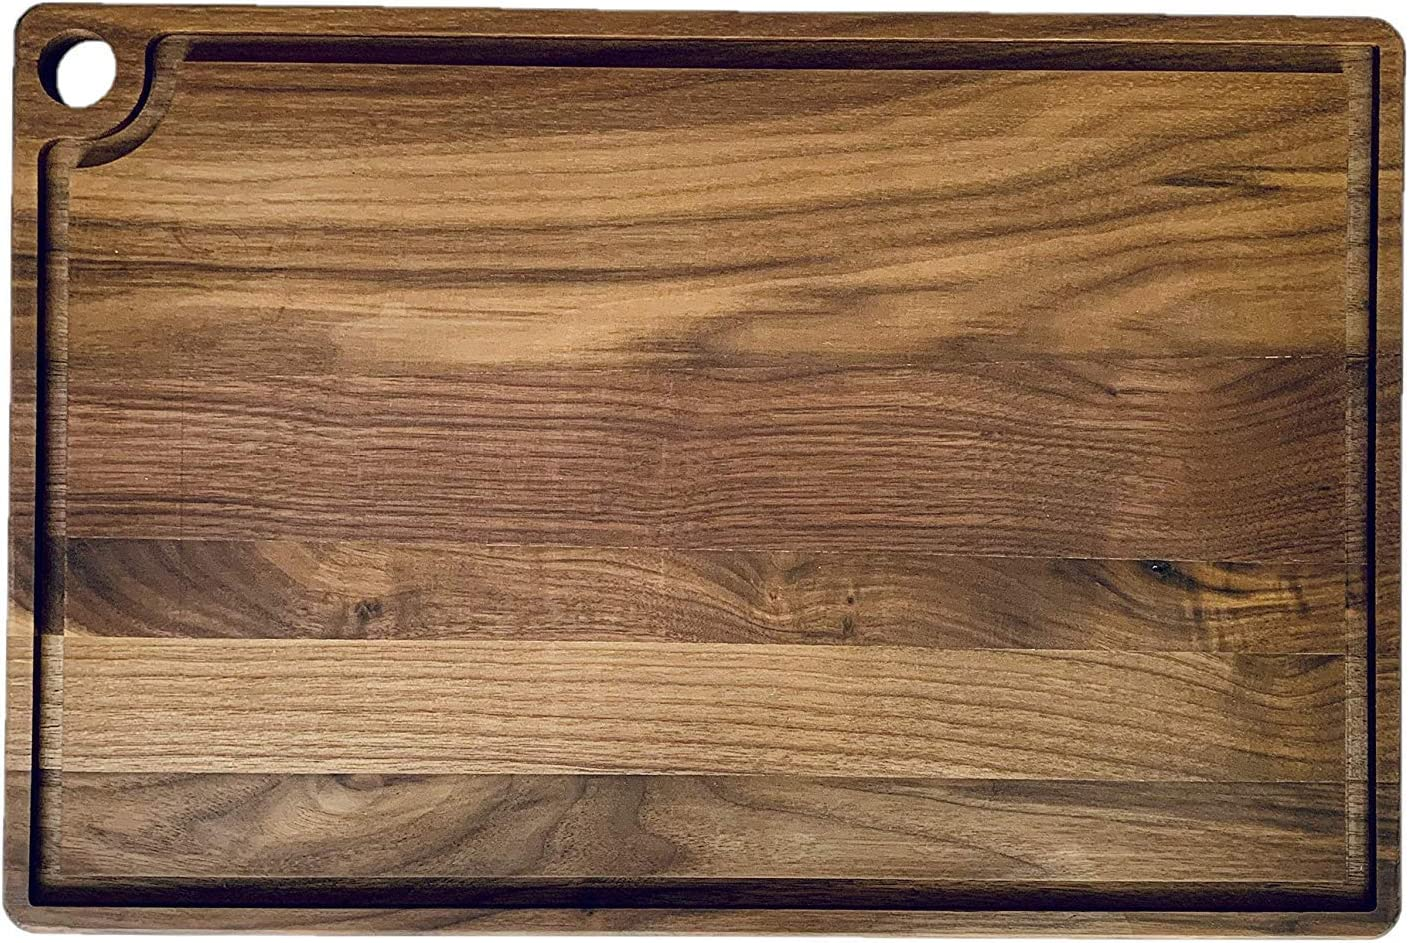 """American Walnut Wood Cutting Board by Accented Kitchen - Reversible with Juice Groove For Chopping, Carving, and Serving - (17 3/4 x 12 x 5/8"""") [並行輸入品]"""